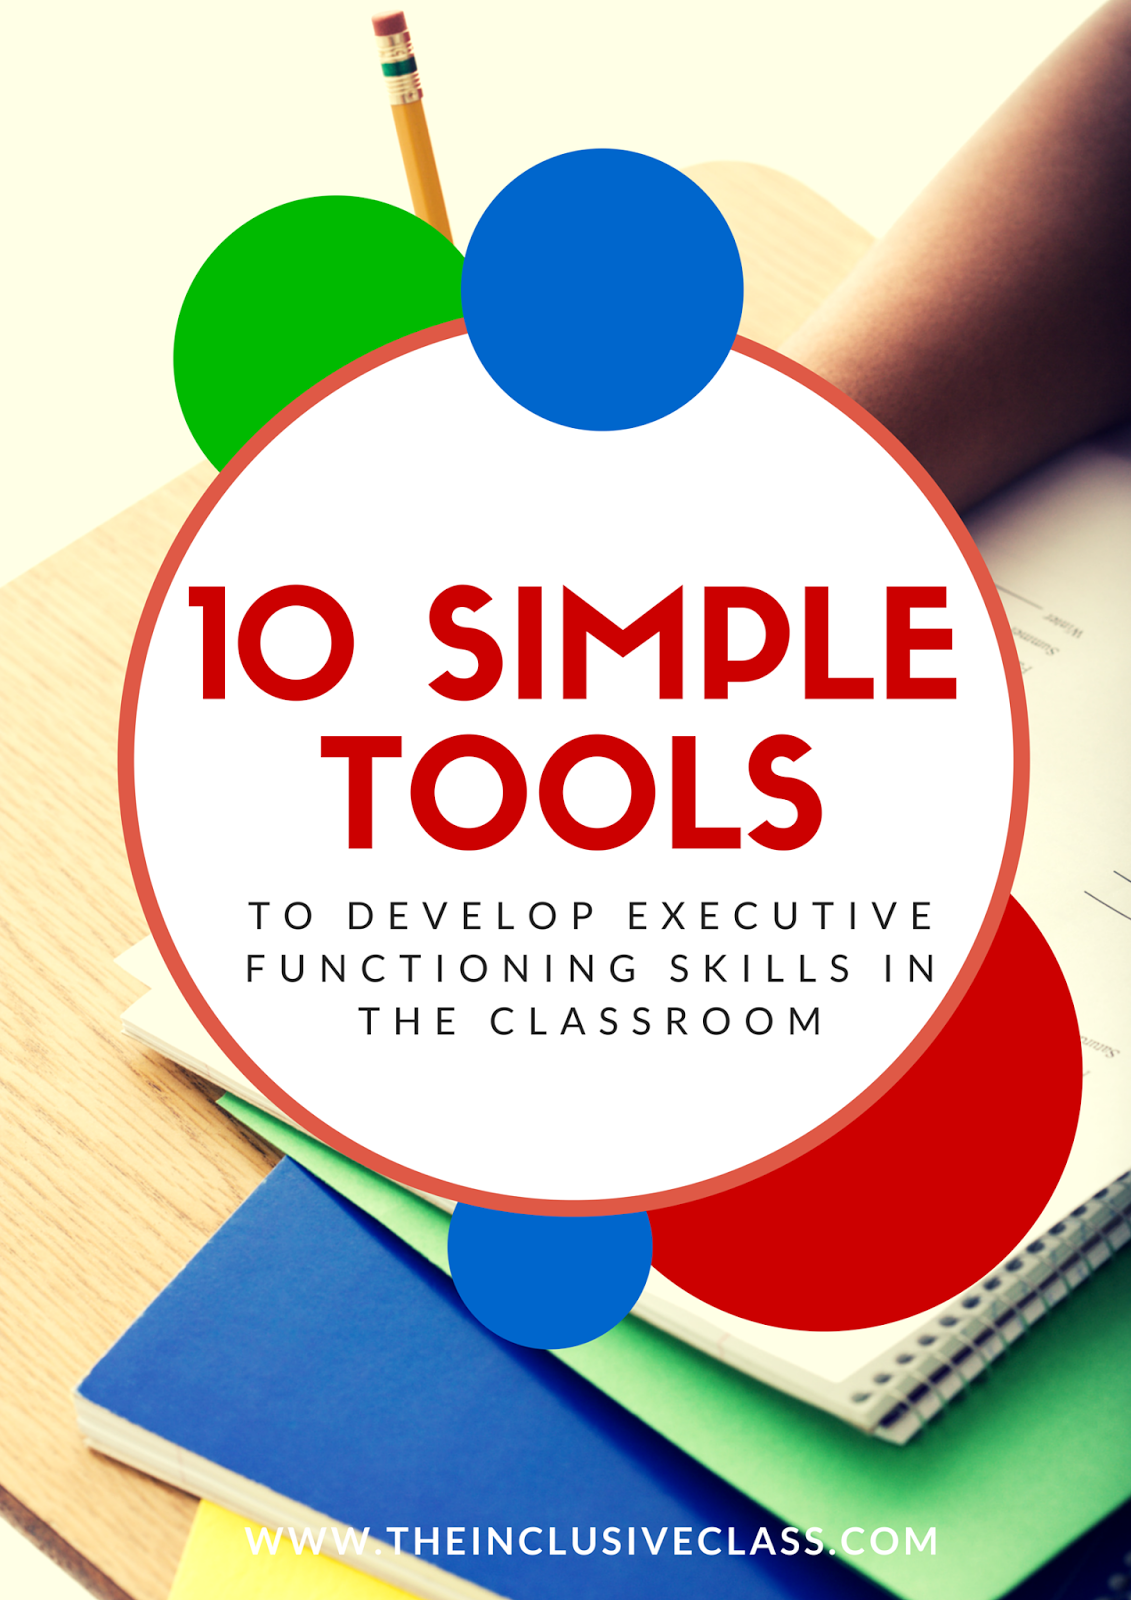 The Inclusive Class 10 Simple Tools To Develop Executive